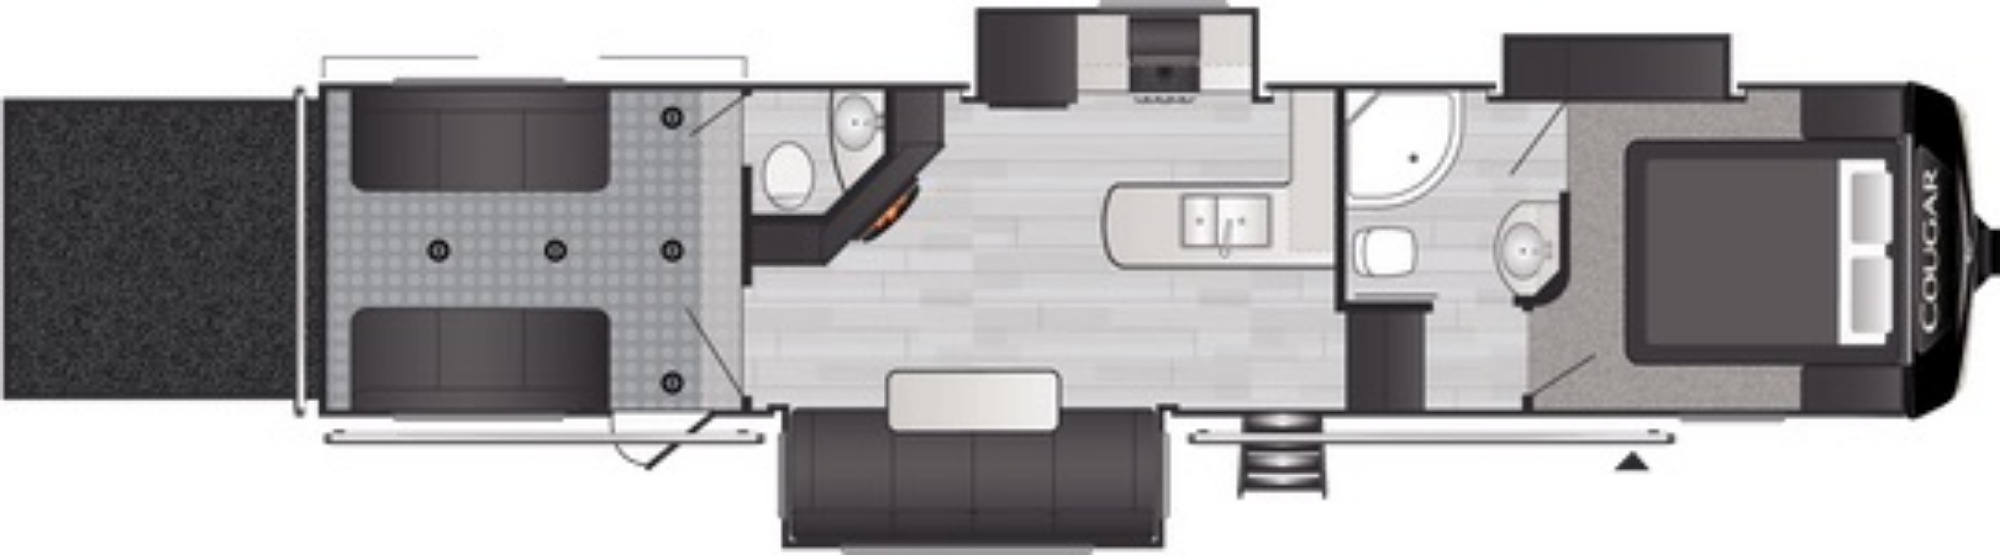 View Floor Plan for 2021 KEYSTONE COUGAR 353SRX